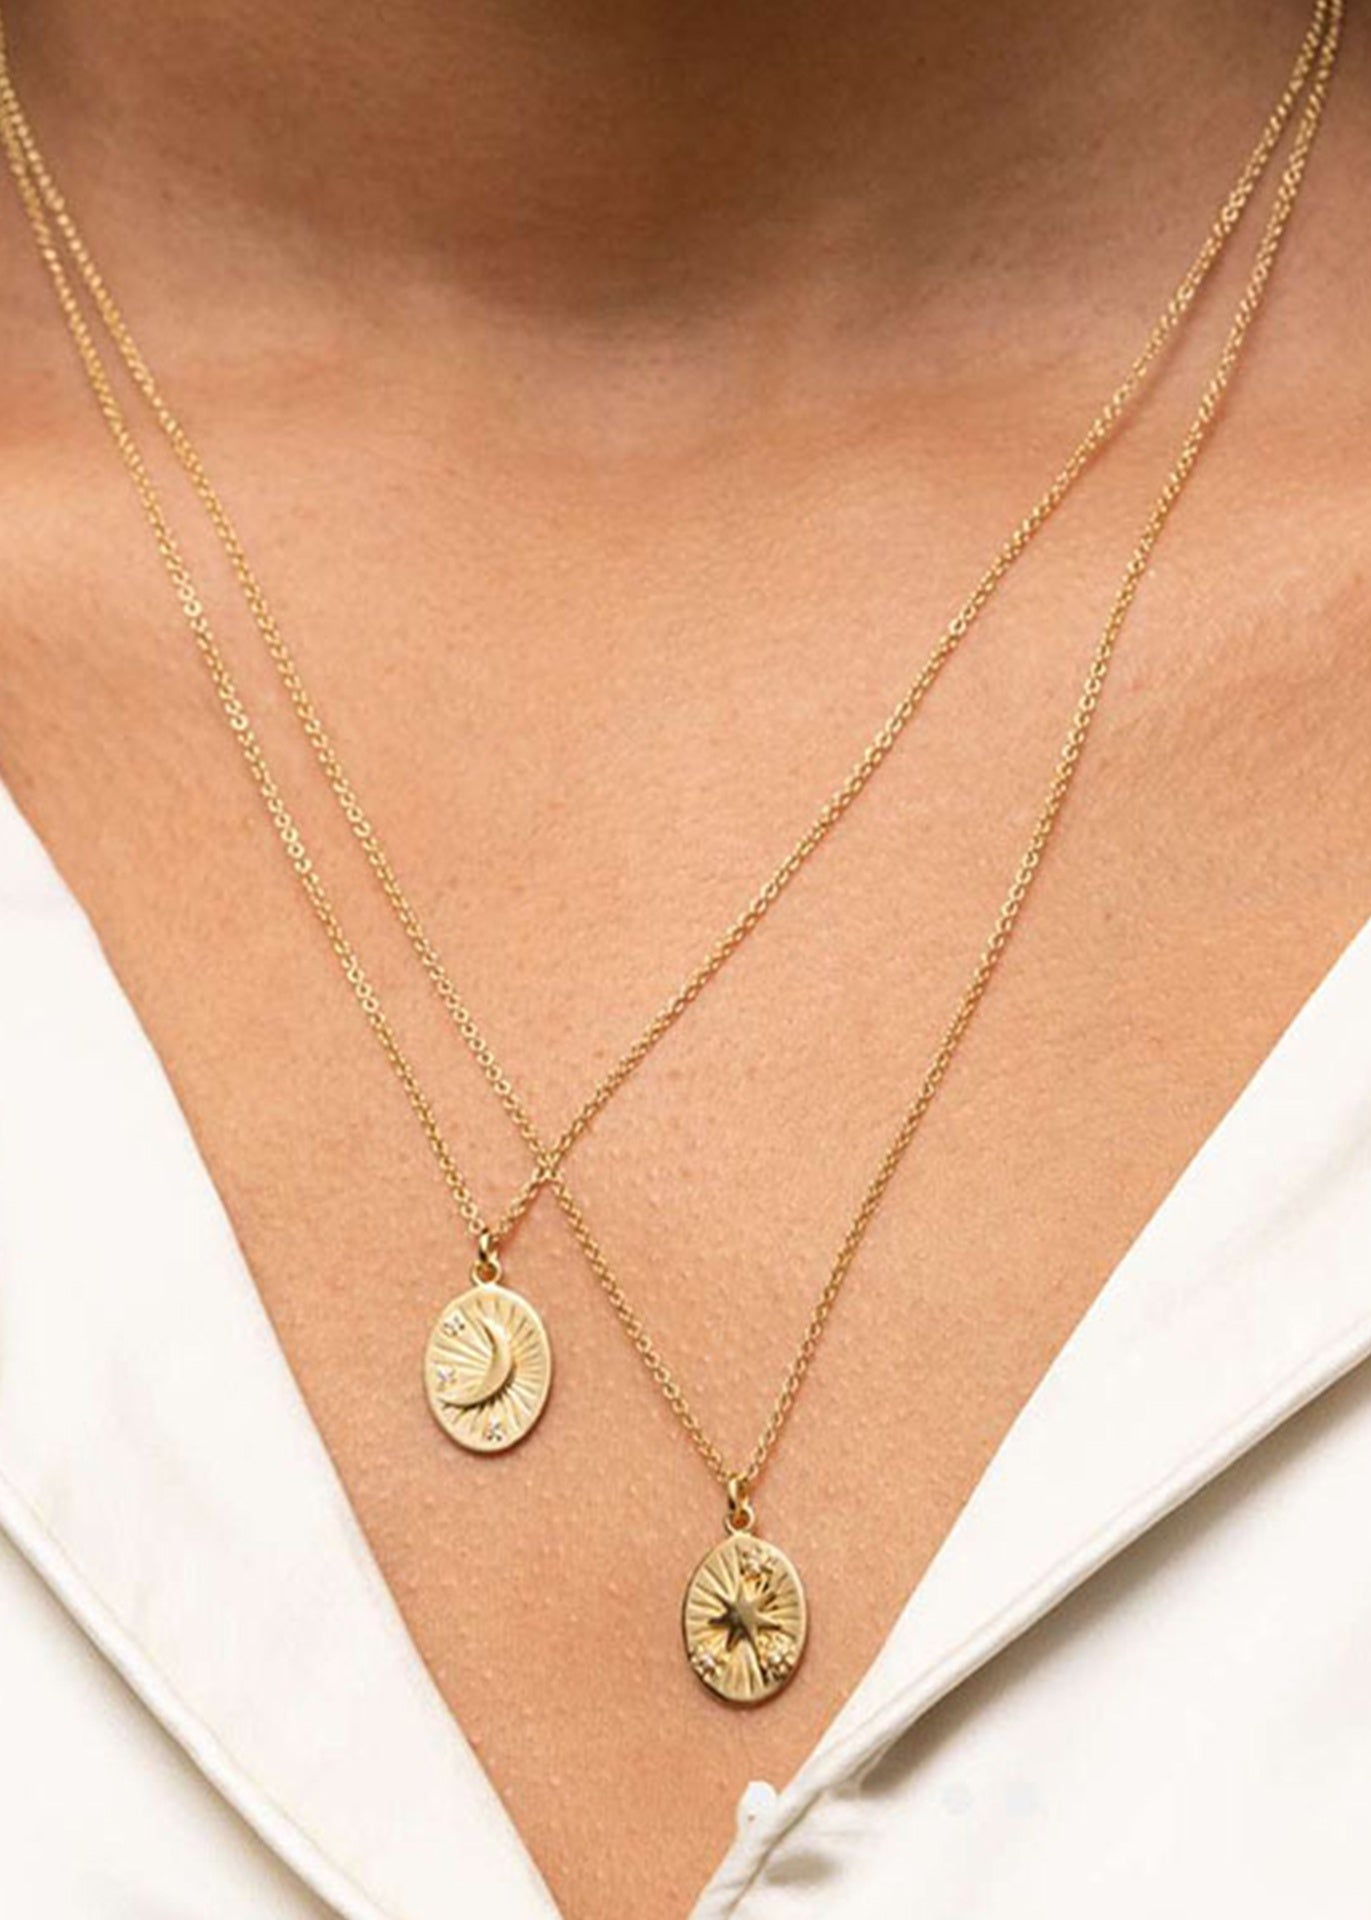 Artemis 18K Gold Plated Moon Necklace